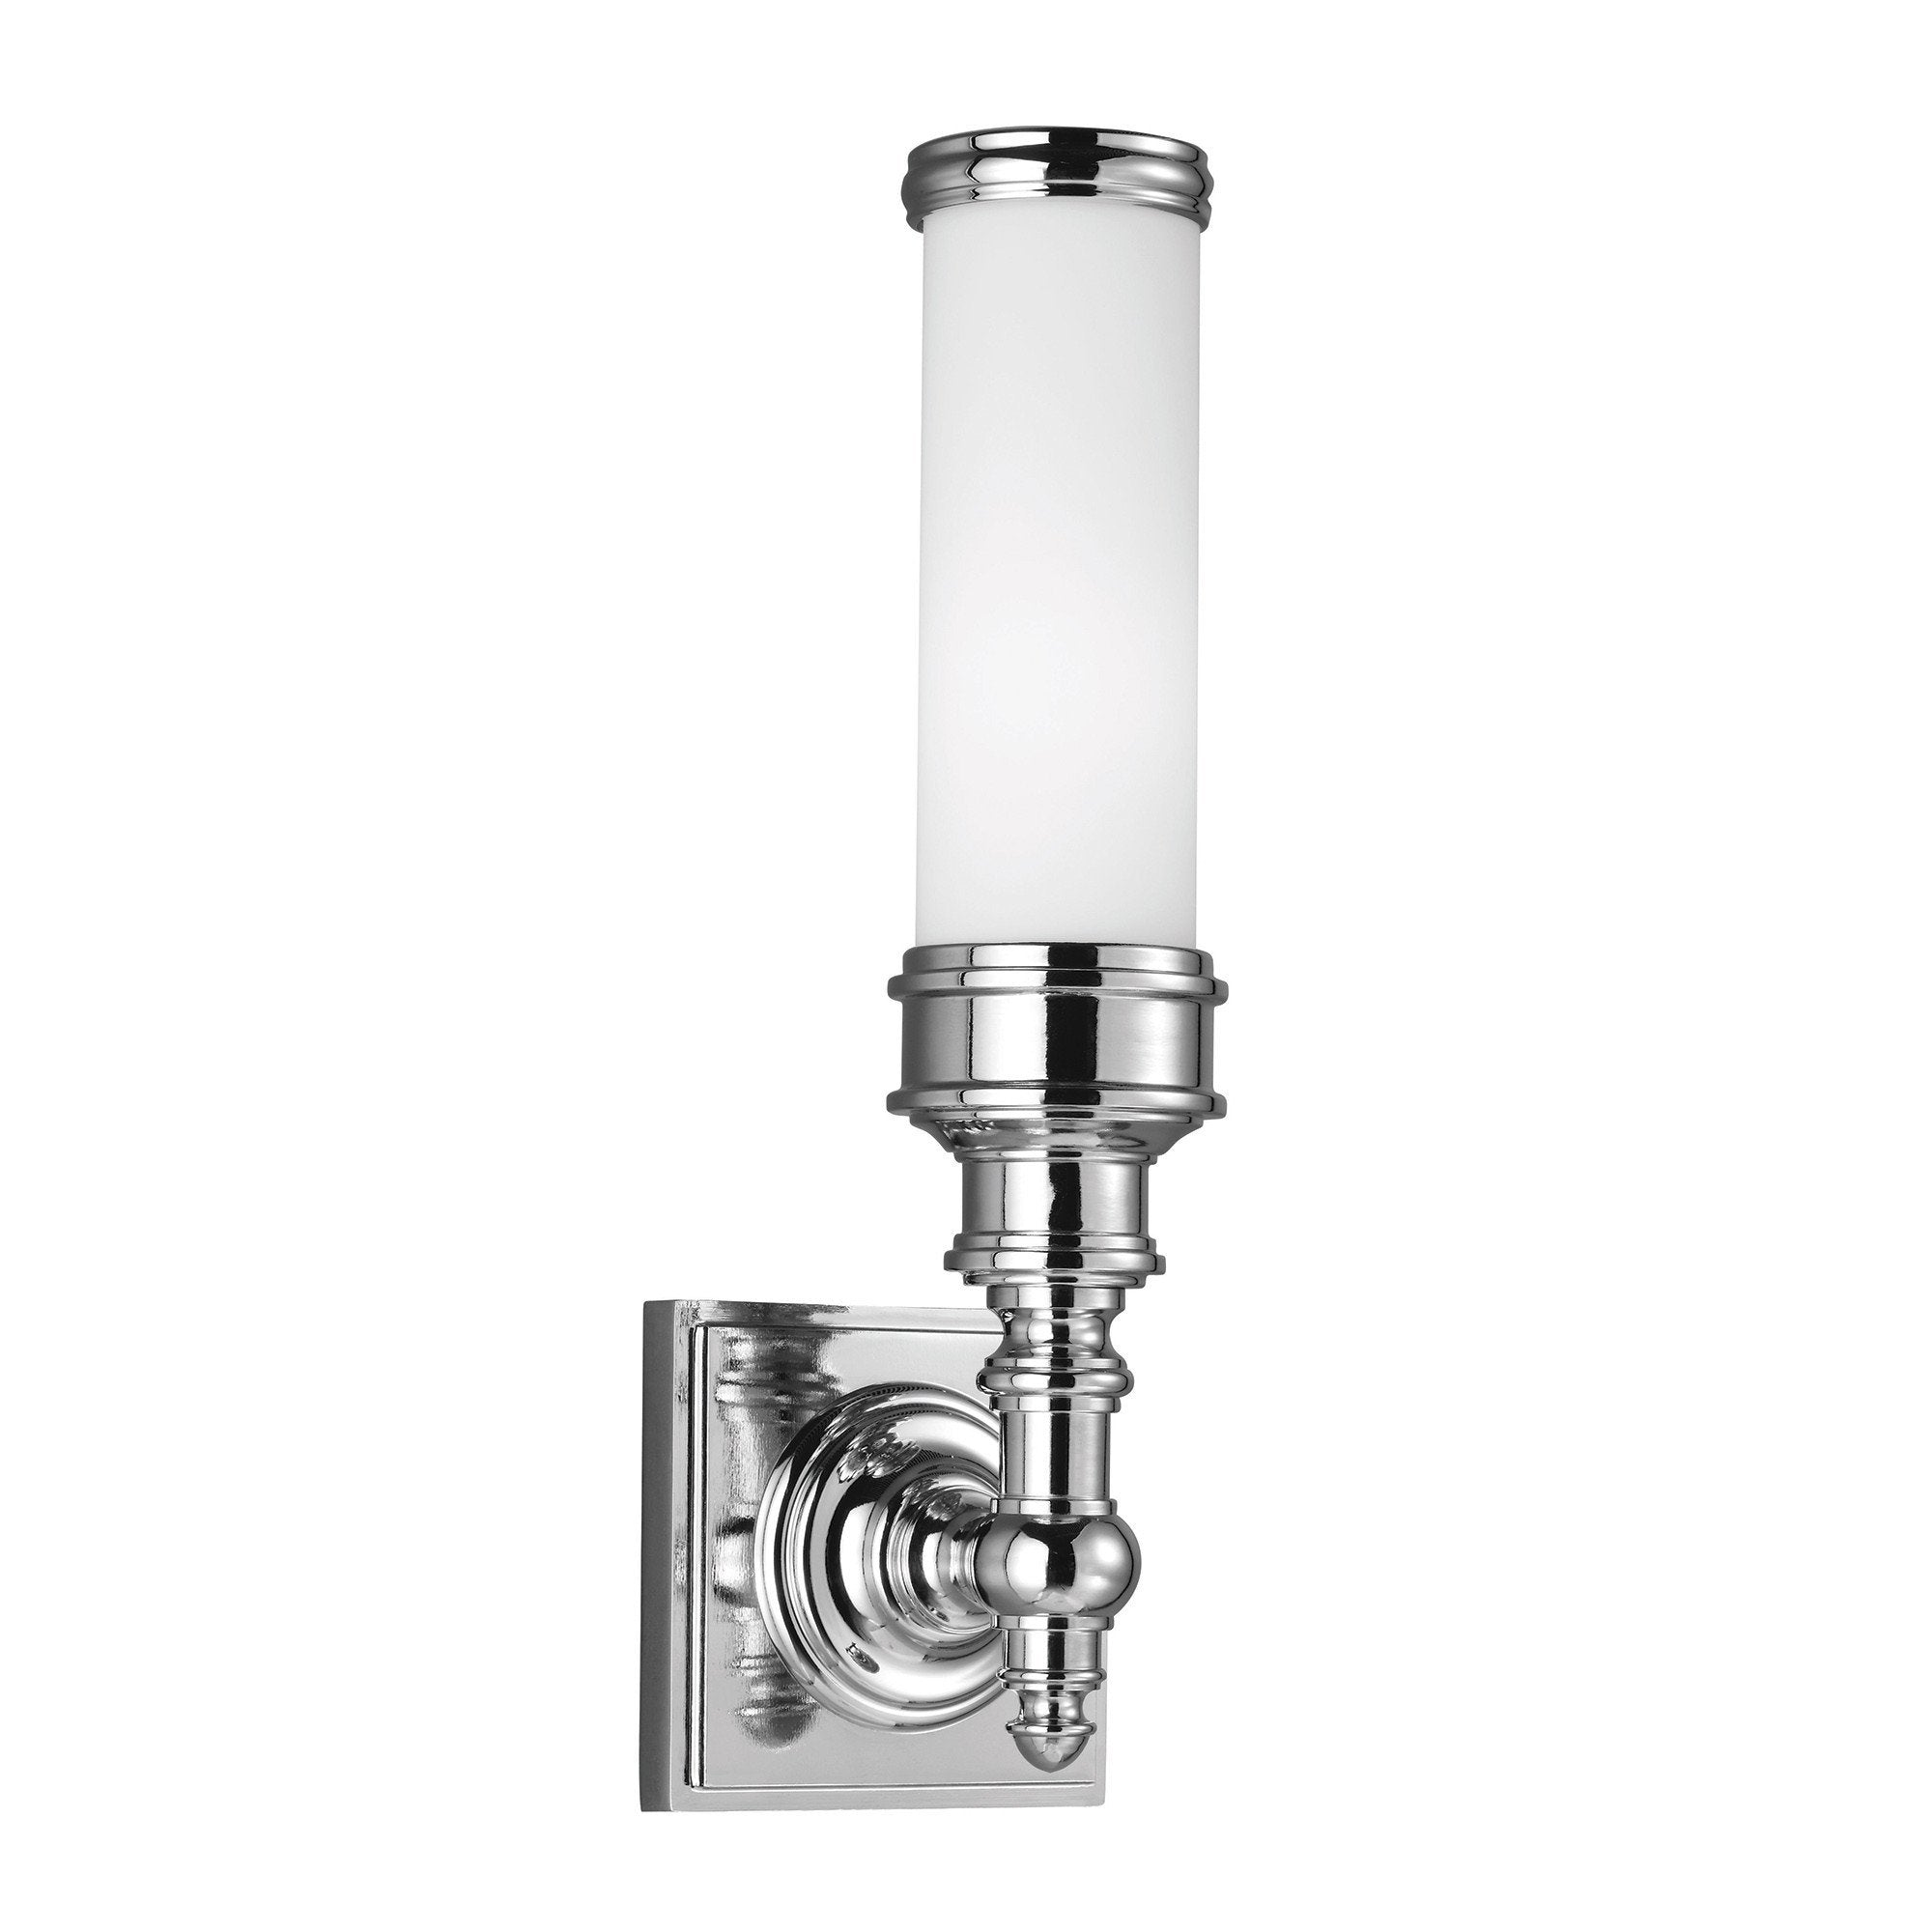 Feiss Payne Ornate Single Bathroom Wall Light - London Lighting - 1